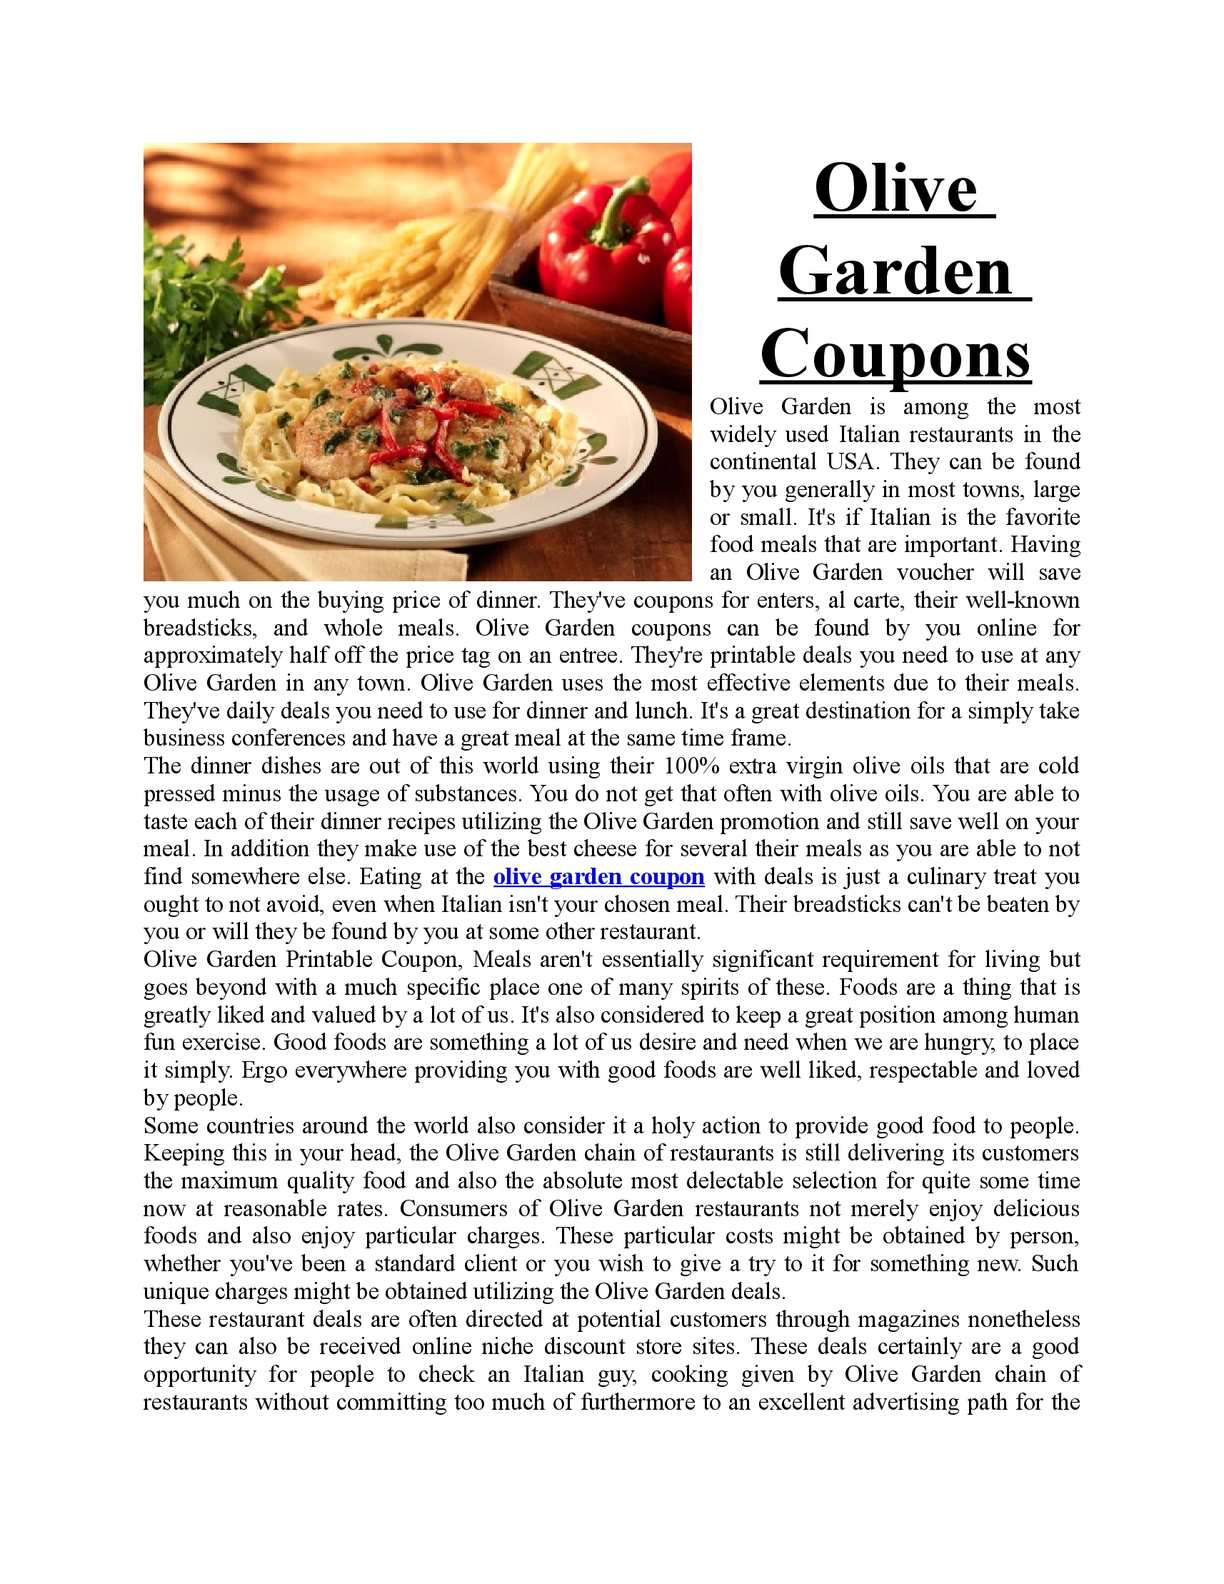 image relating to Olive Garden Printable Coupons referred to as Calaméo - print olive back garden discount coupons